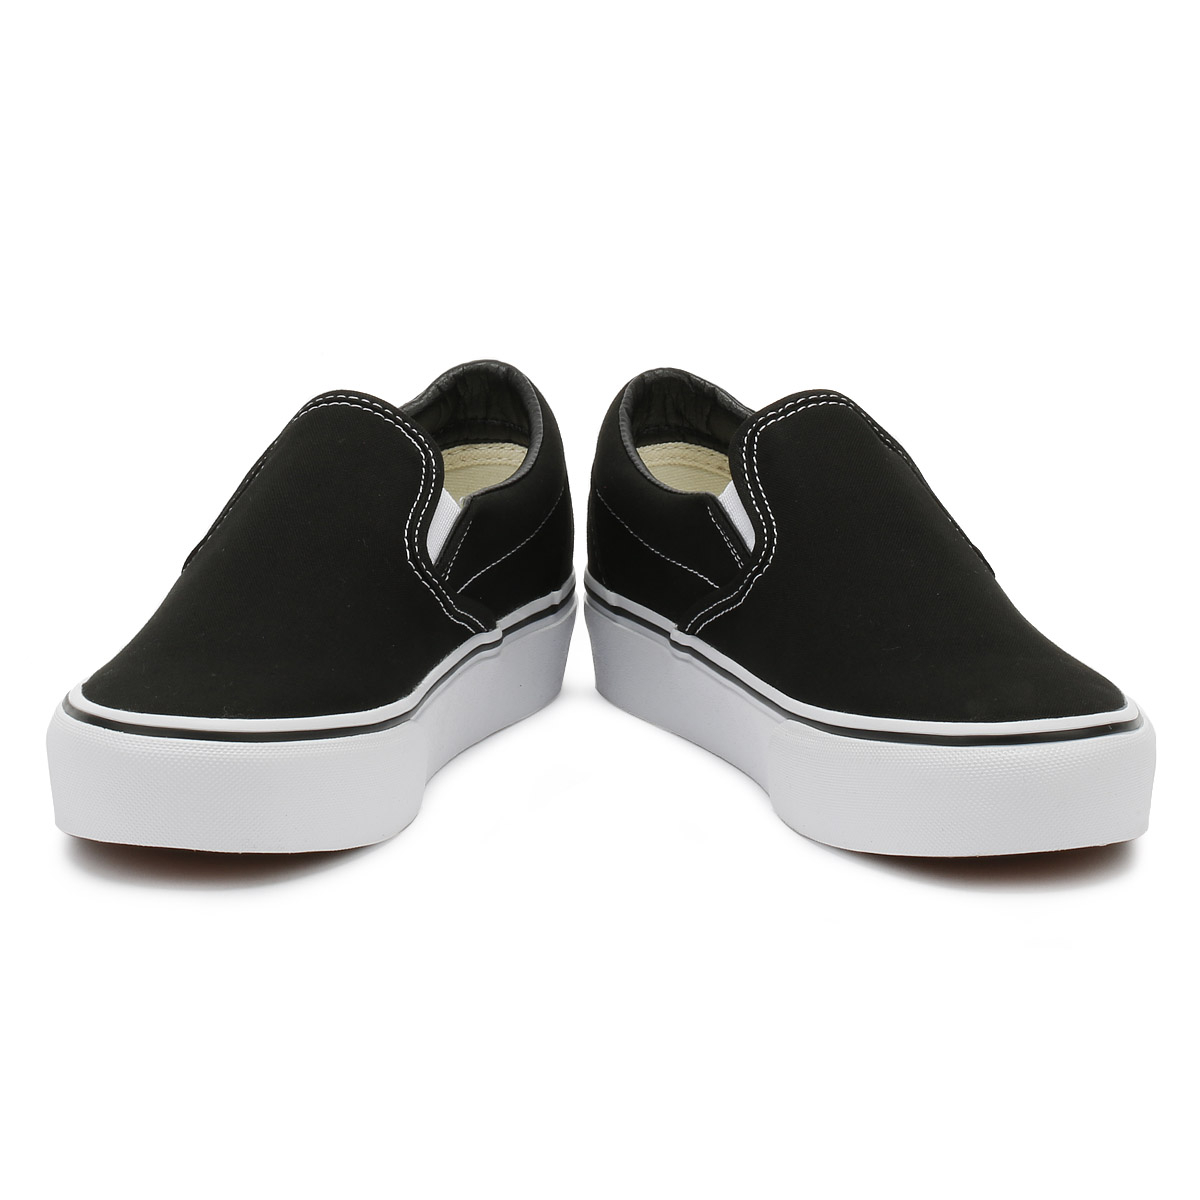 19cf2a28f0e Vans Womens Trainers Black Classic Slip On Platform Ladies Sport Casual  Shoes